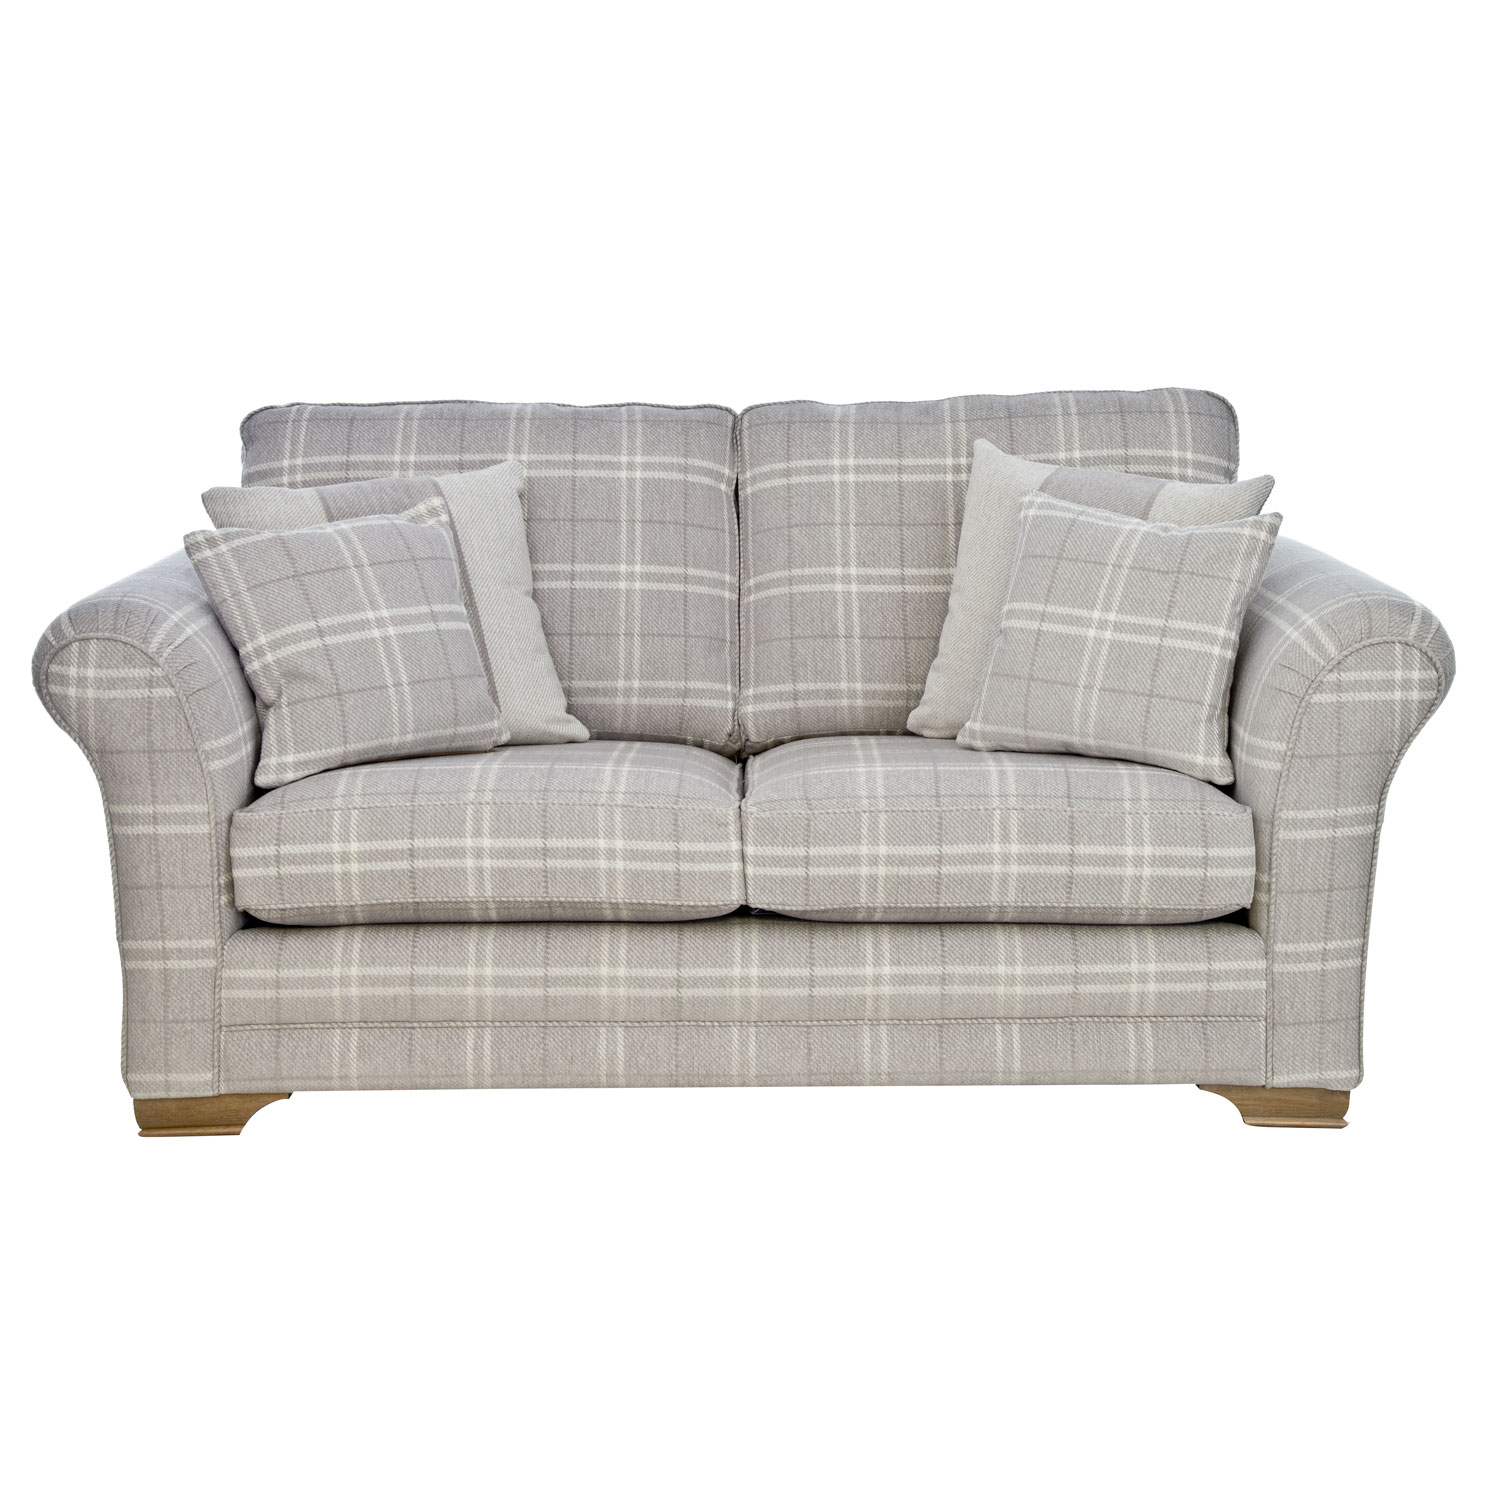 Image of Casa Georgia 2 Seater Fabric Sofa, Small